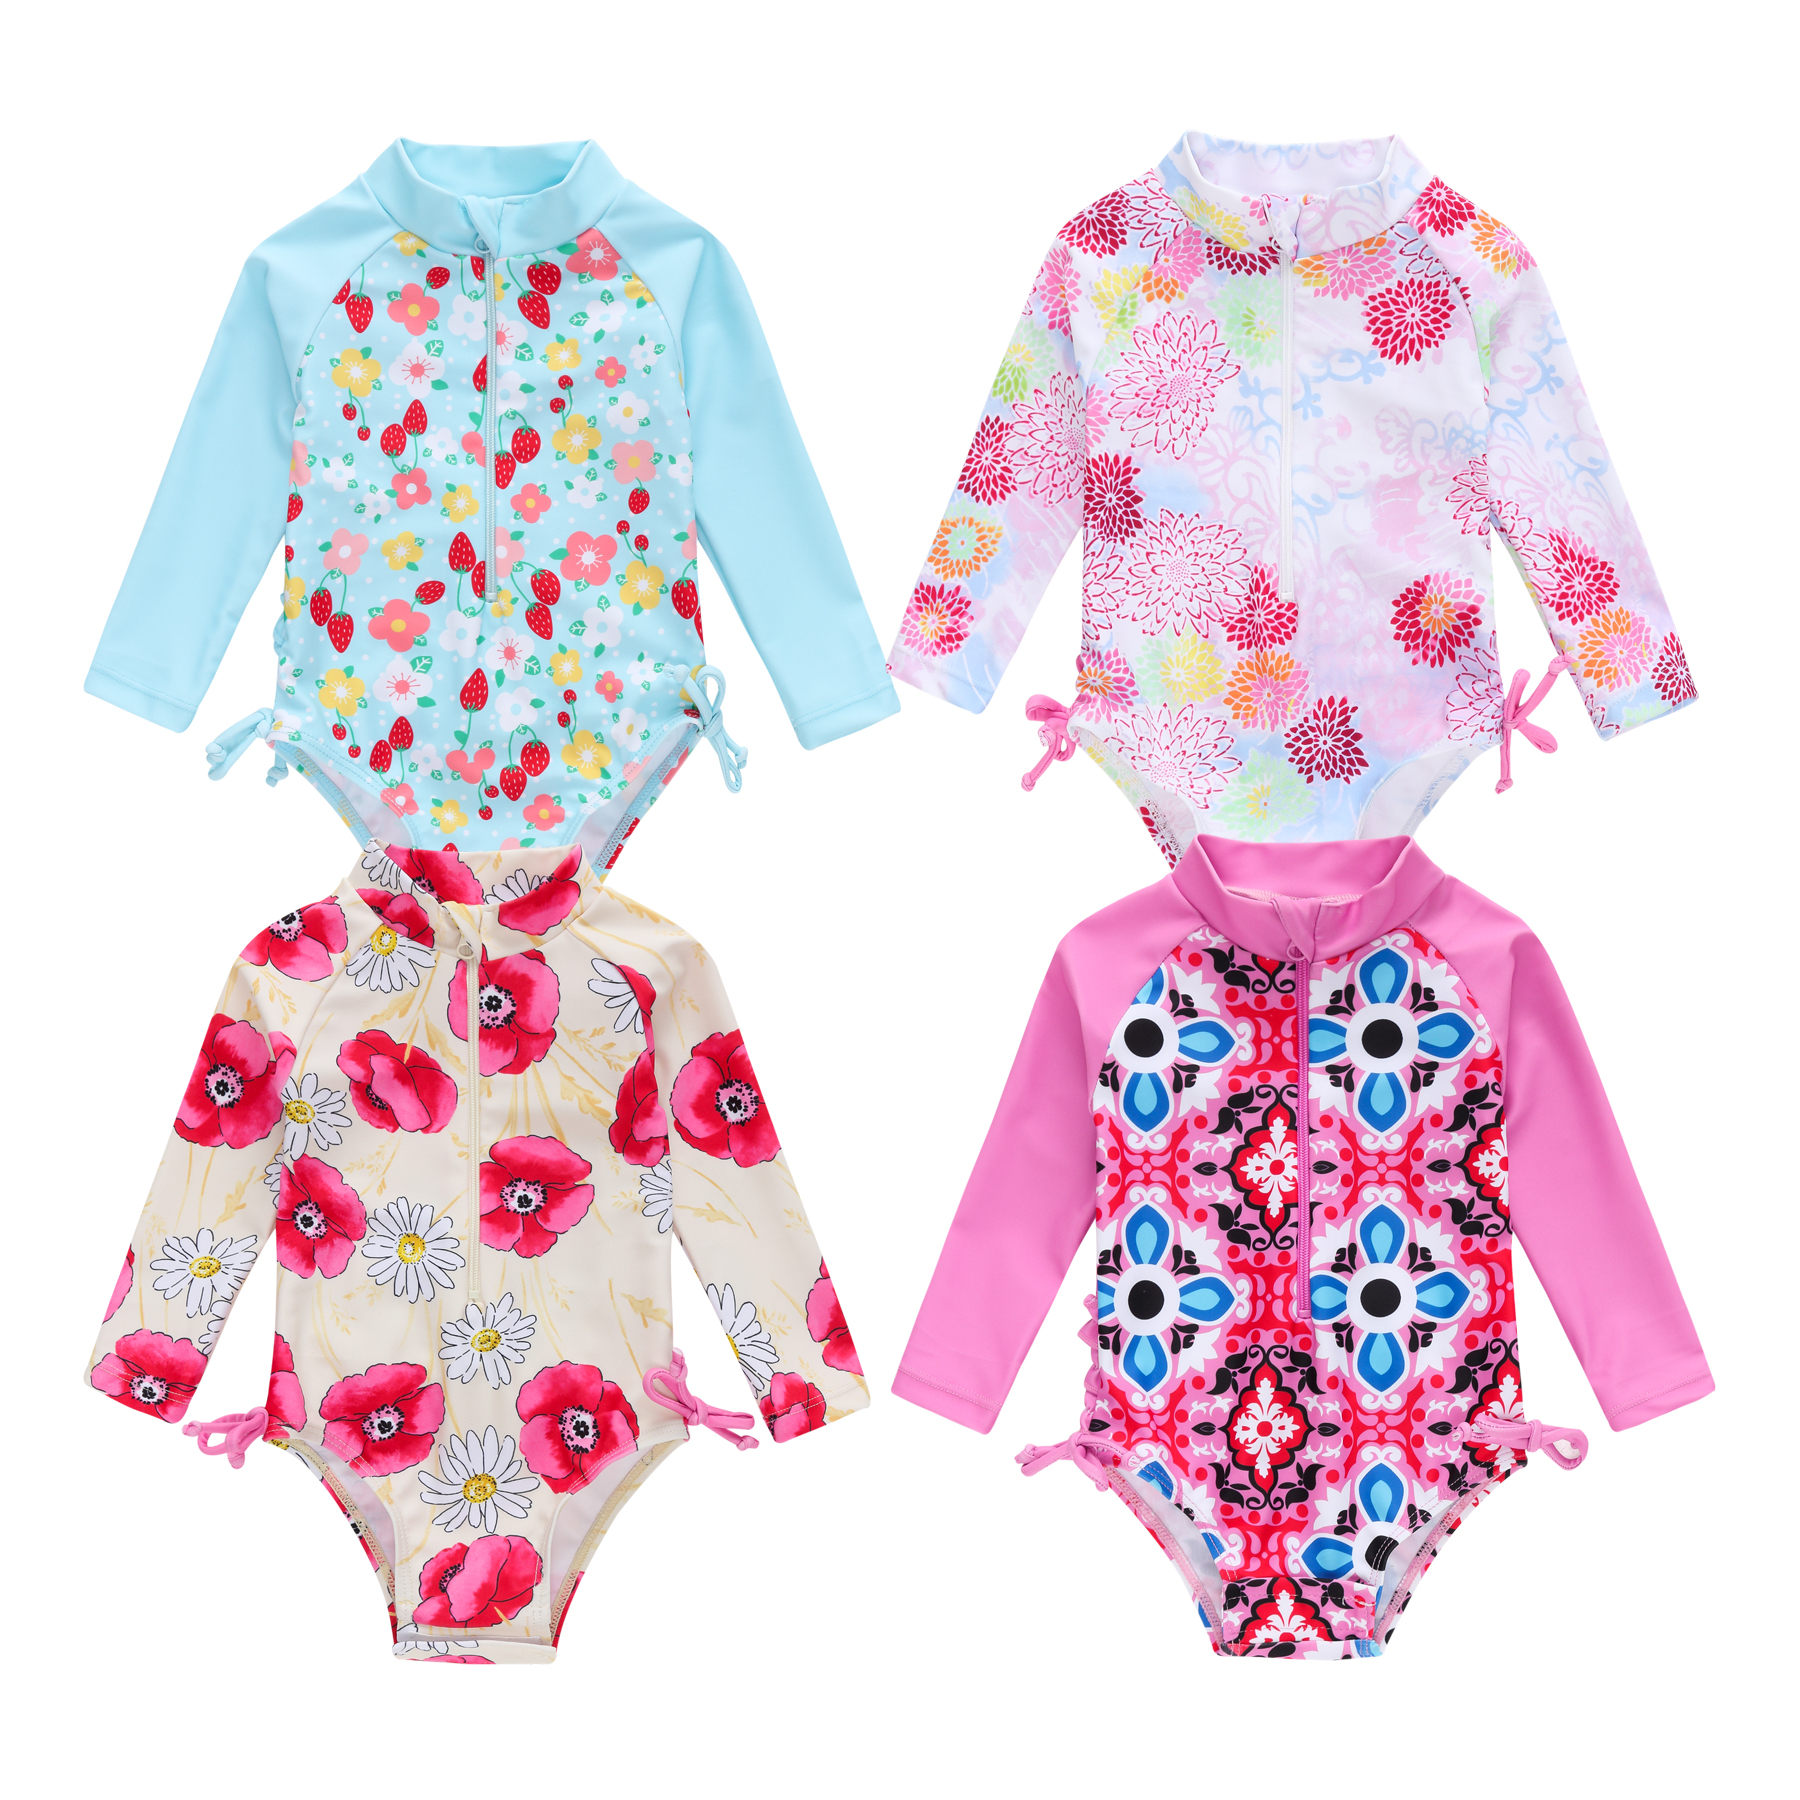 2019 New Summer Toddler Infant Baby Girl Swimsuit Cute Long Sleeve One-piece Floral Swimwear Swimming Costume Summer Cute Bikini